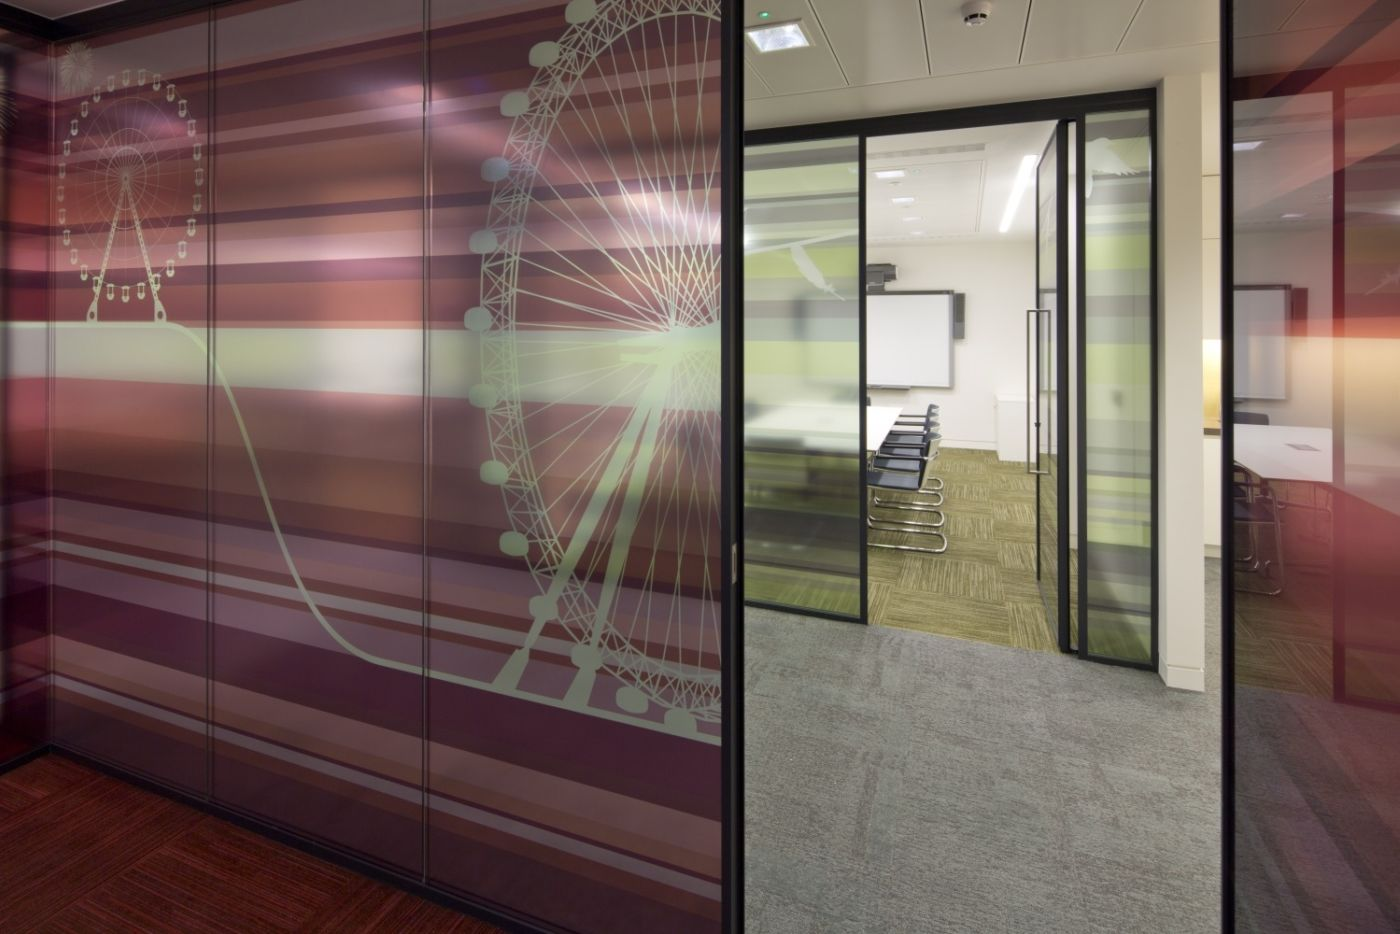 Meeting rooms with glass walls and modern details in London office fit out